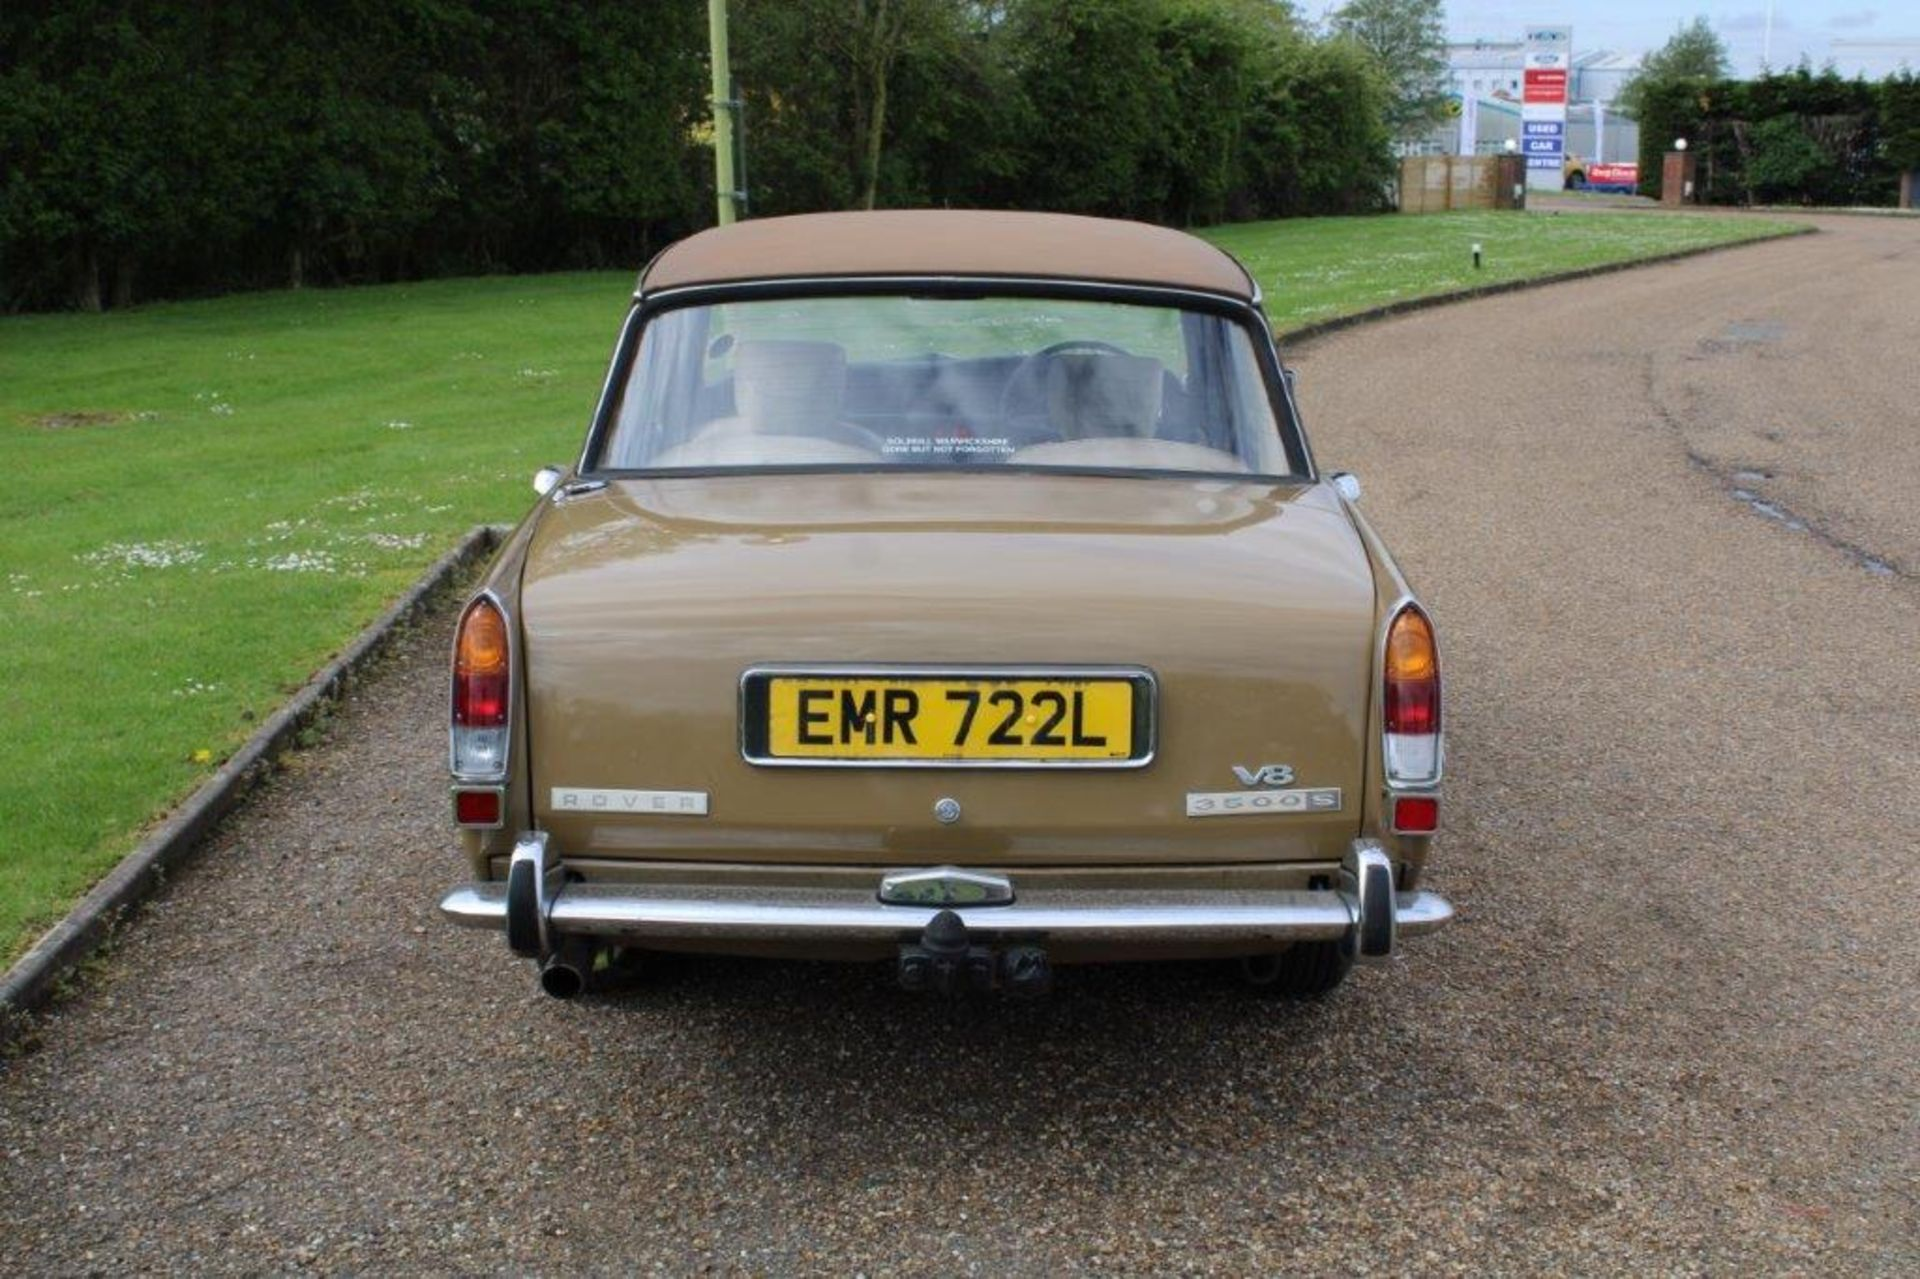 1970 Rover P6 3500 S 1 of 6 development cars - Image 7 of 21